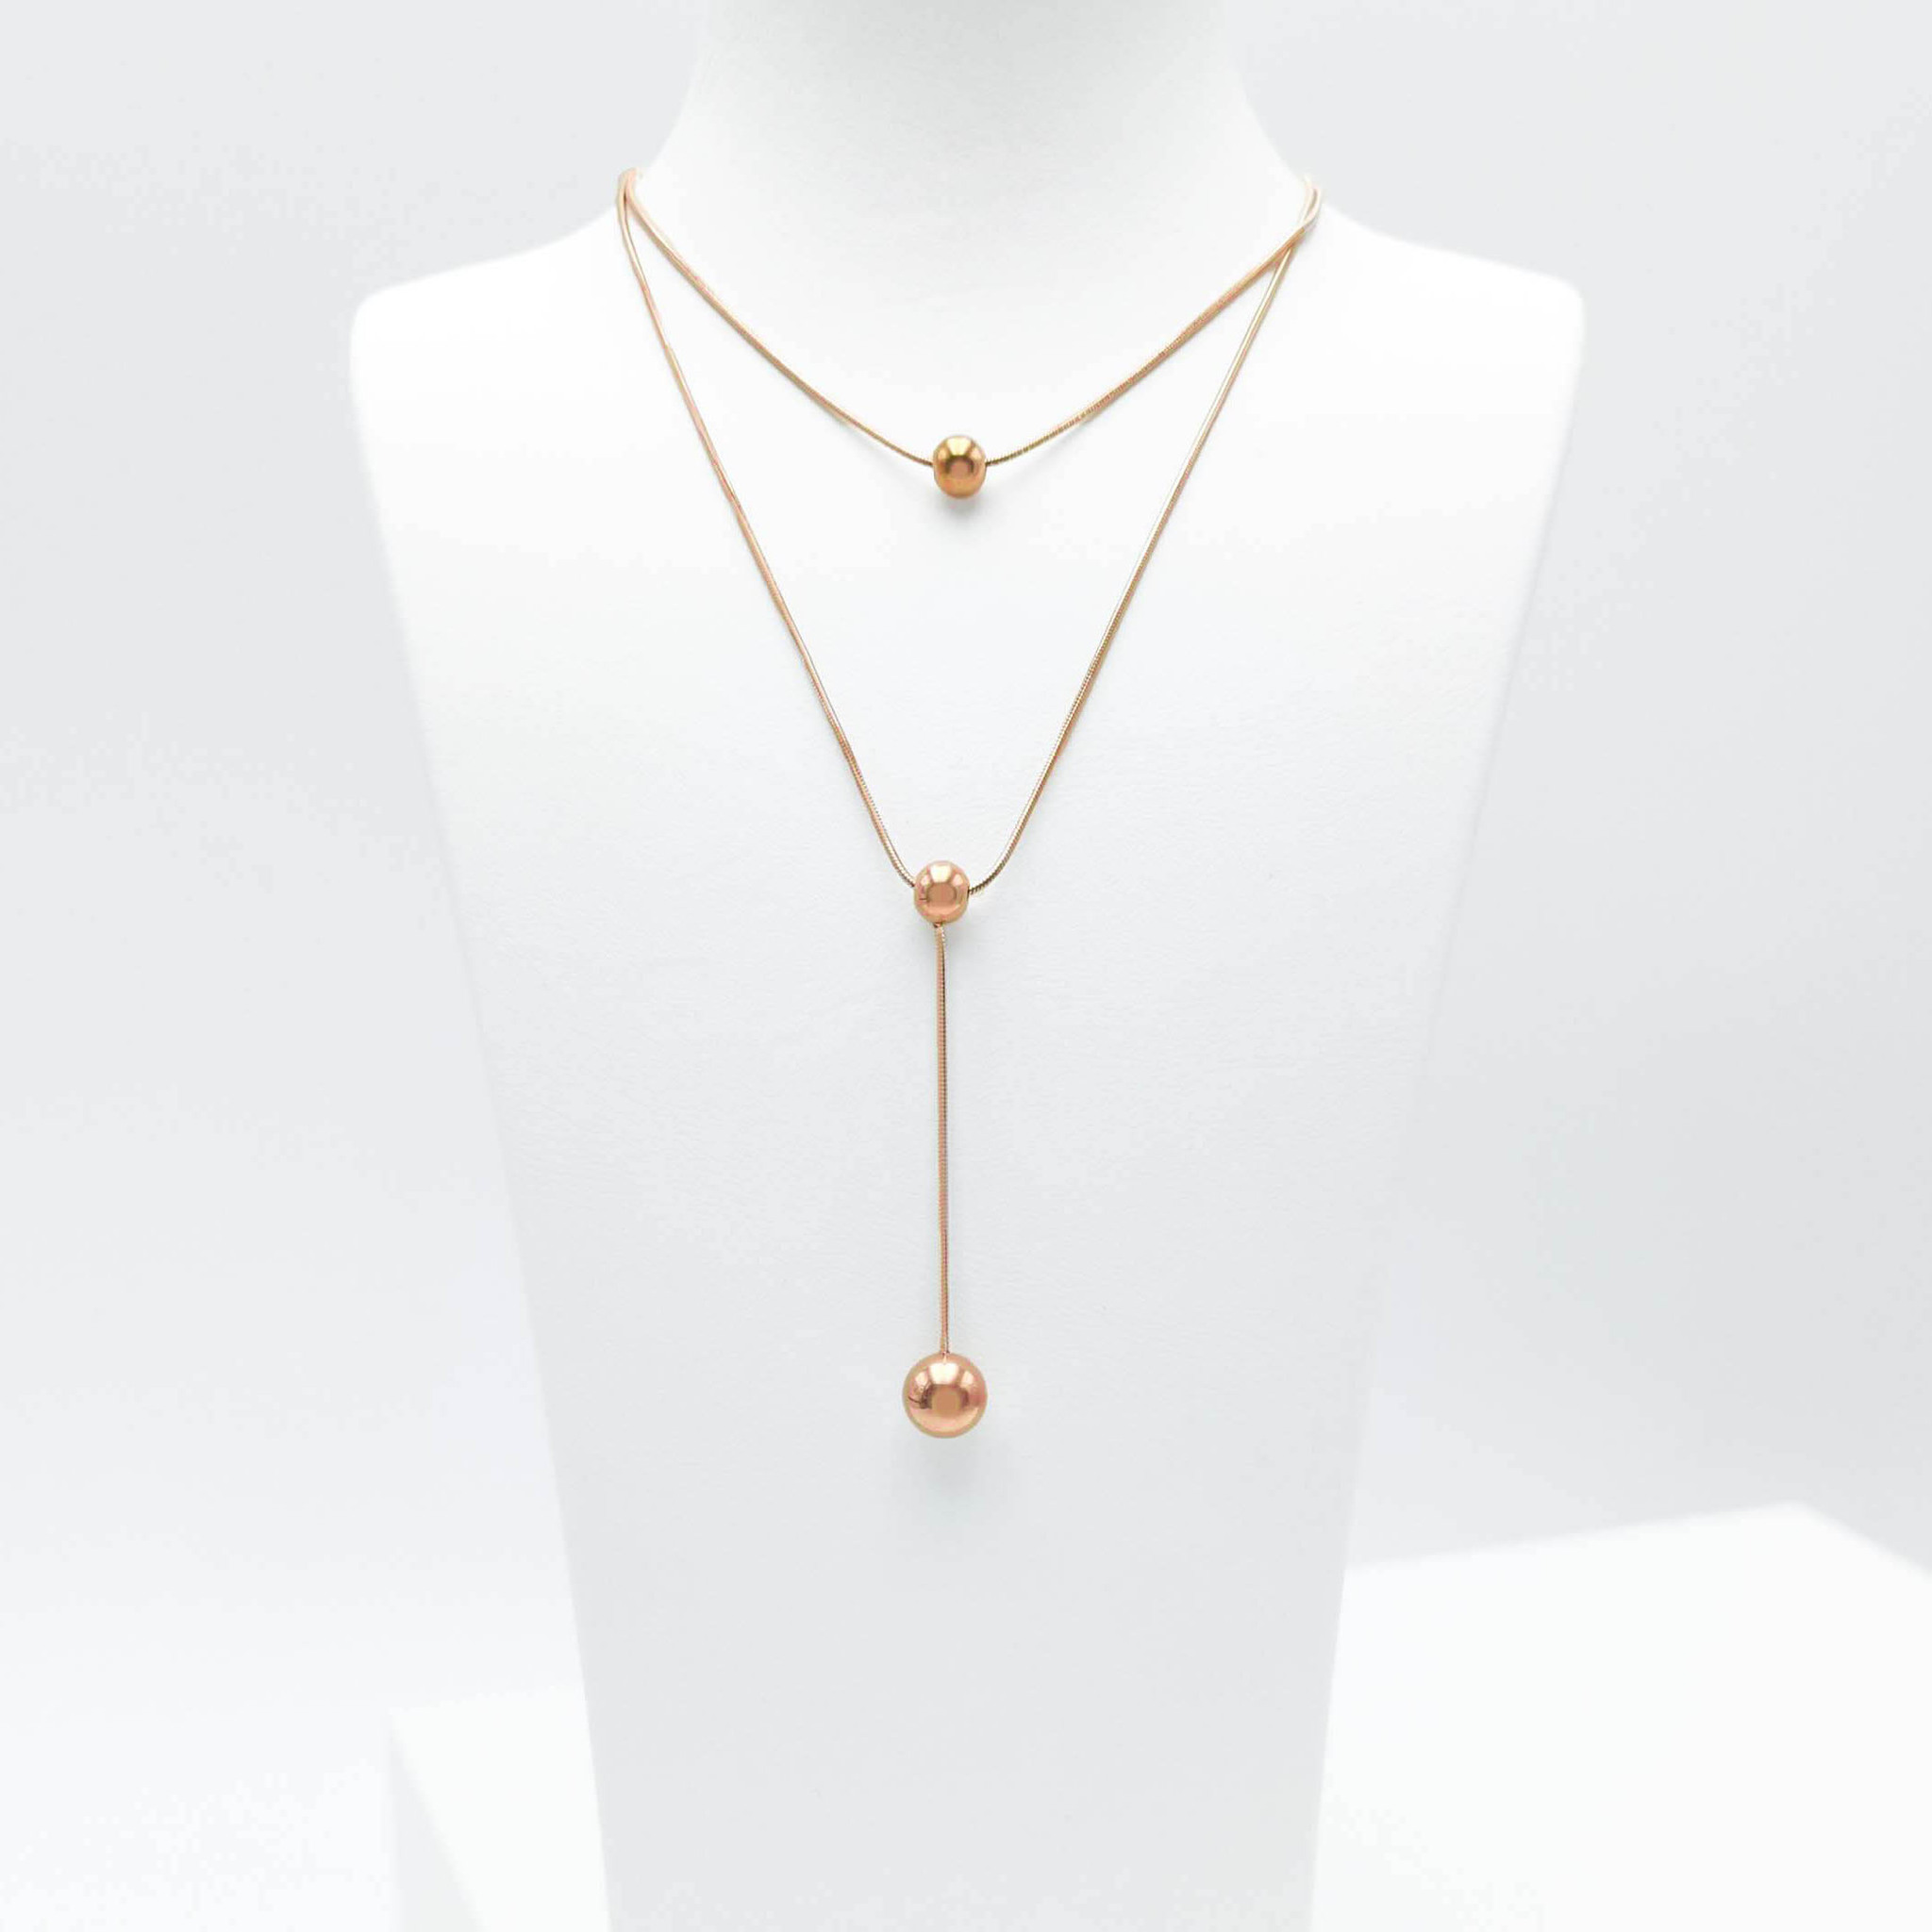 1- Prestige Beauty Orbits Halsband Modern and trendy Necklace and women jewelry and accessories from SWEVALI fashion Sweden